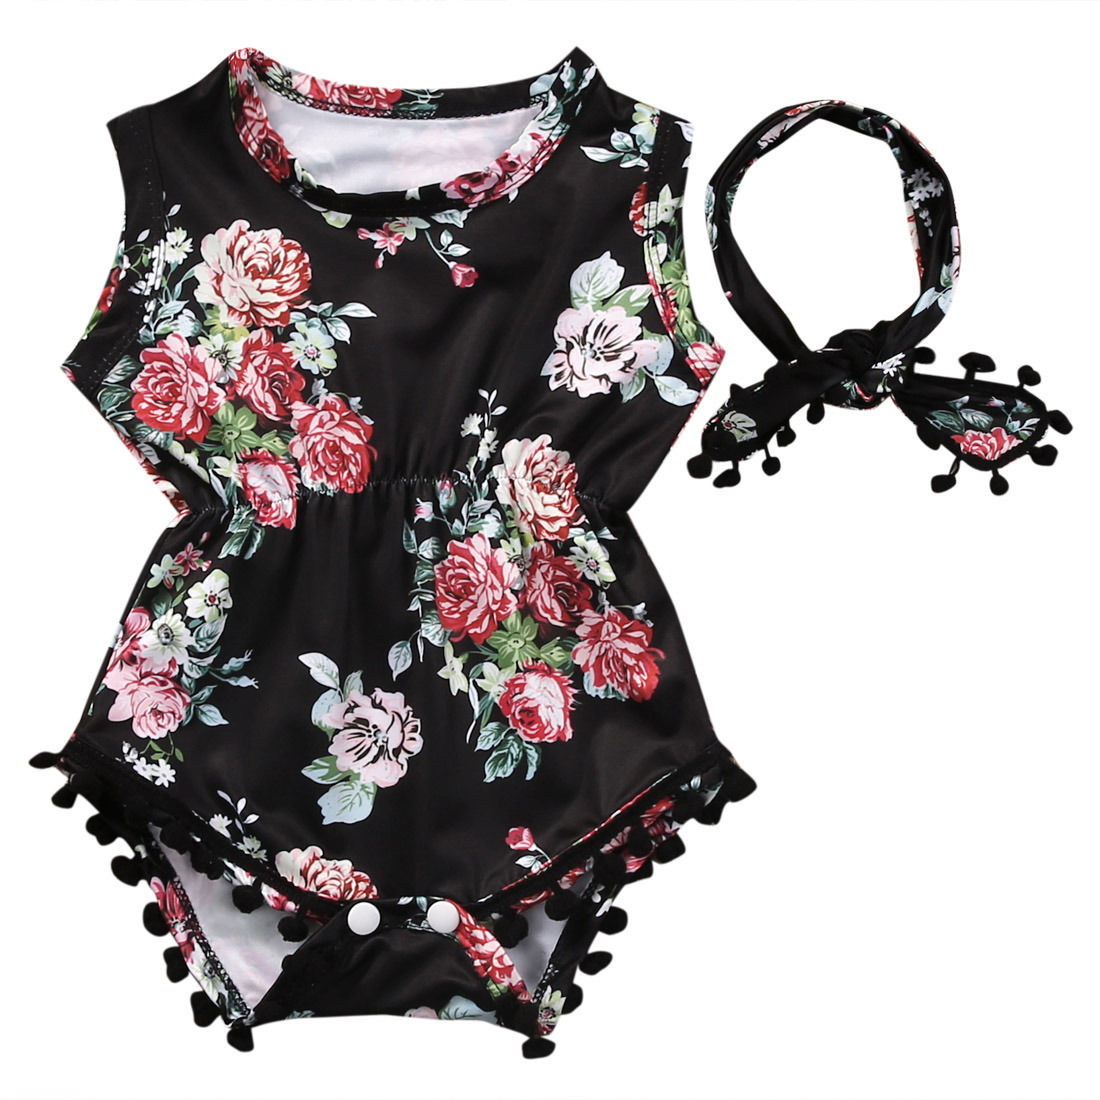 summer Cute Baby Girls Floral Bodysuit Sleeveless Tassels One-pieces Sunsuit Headband Clothes Set Outfits Infant Clothing